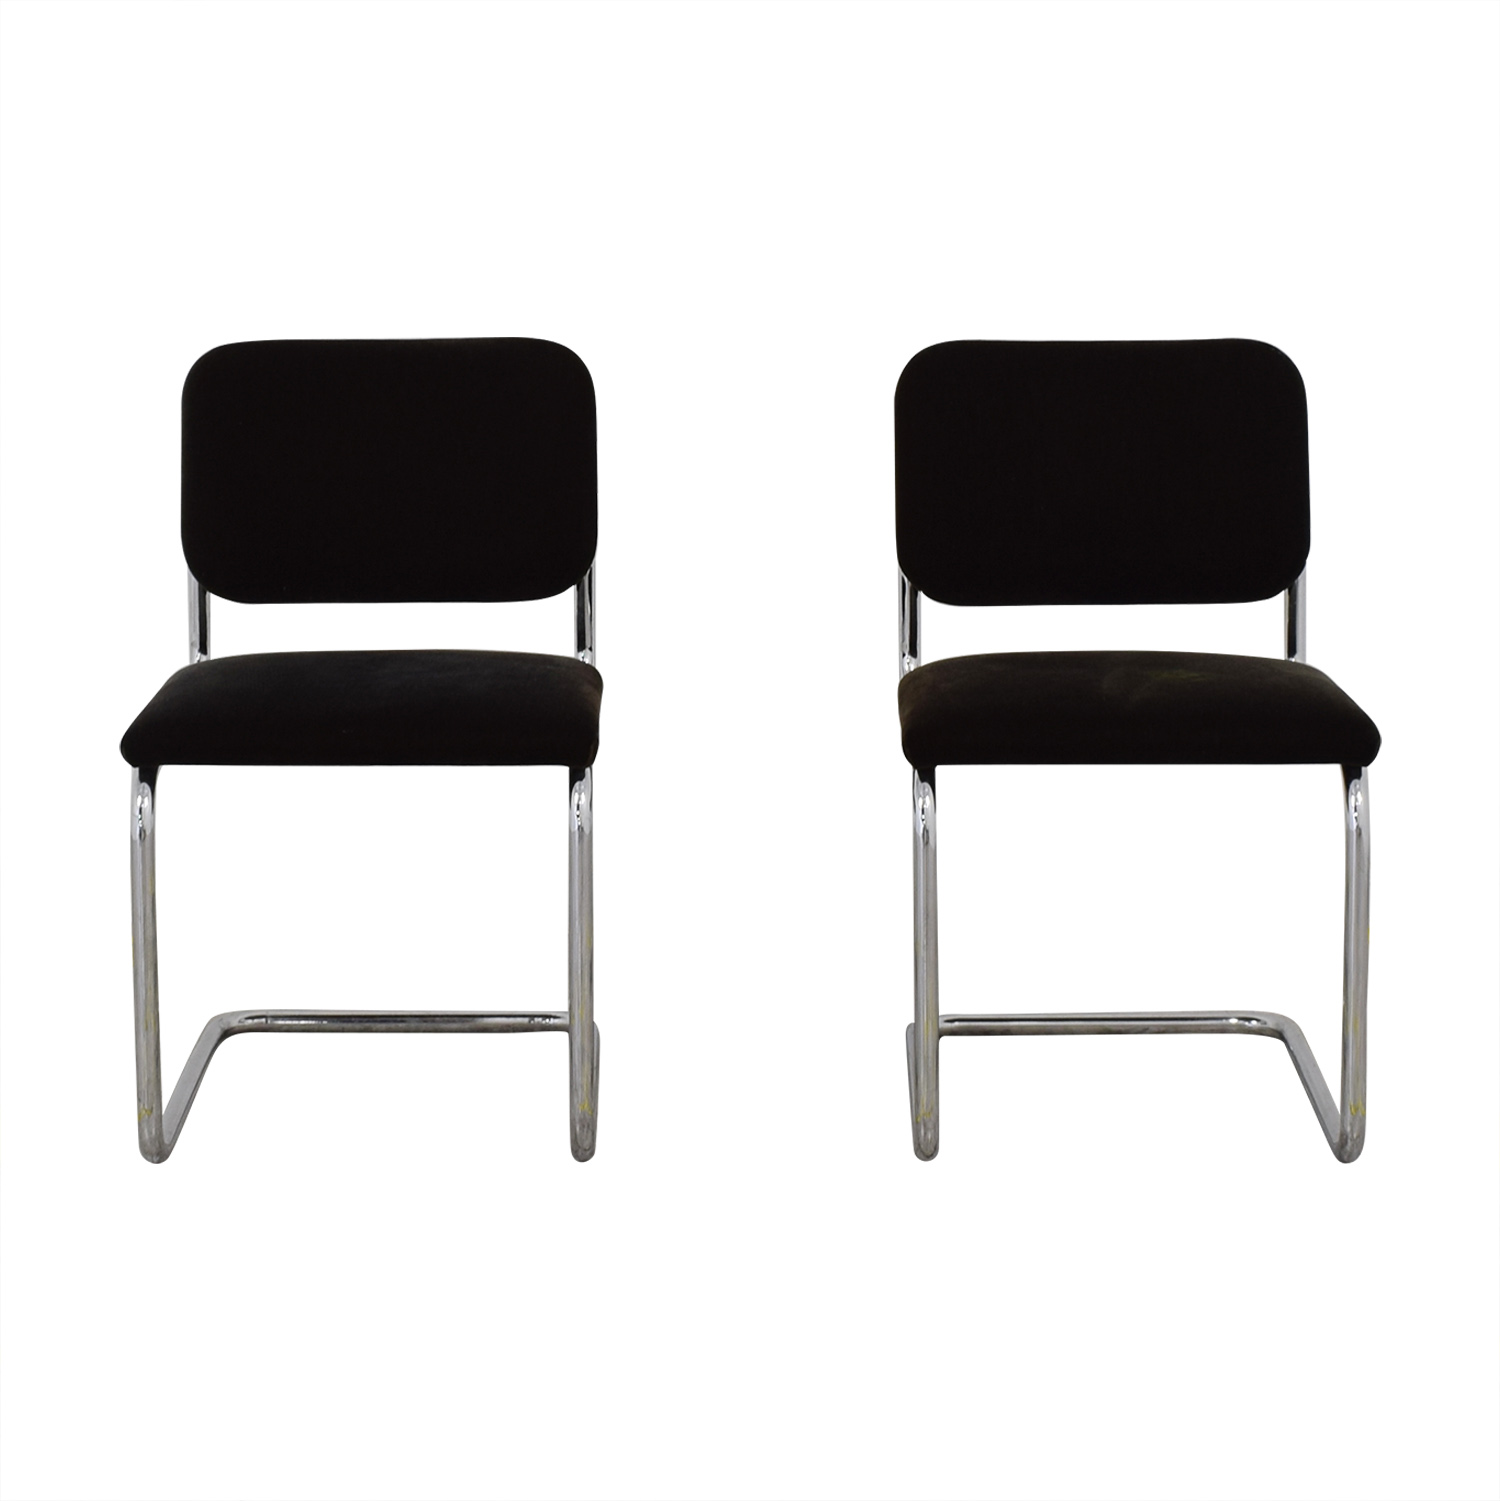 Knoll Marcel Breuer Cesca Chairs / Dining Chairs